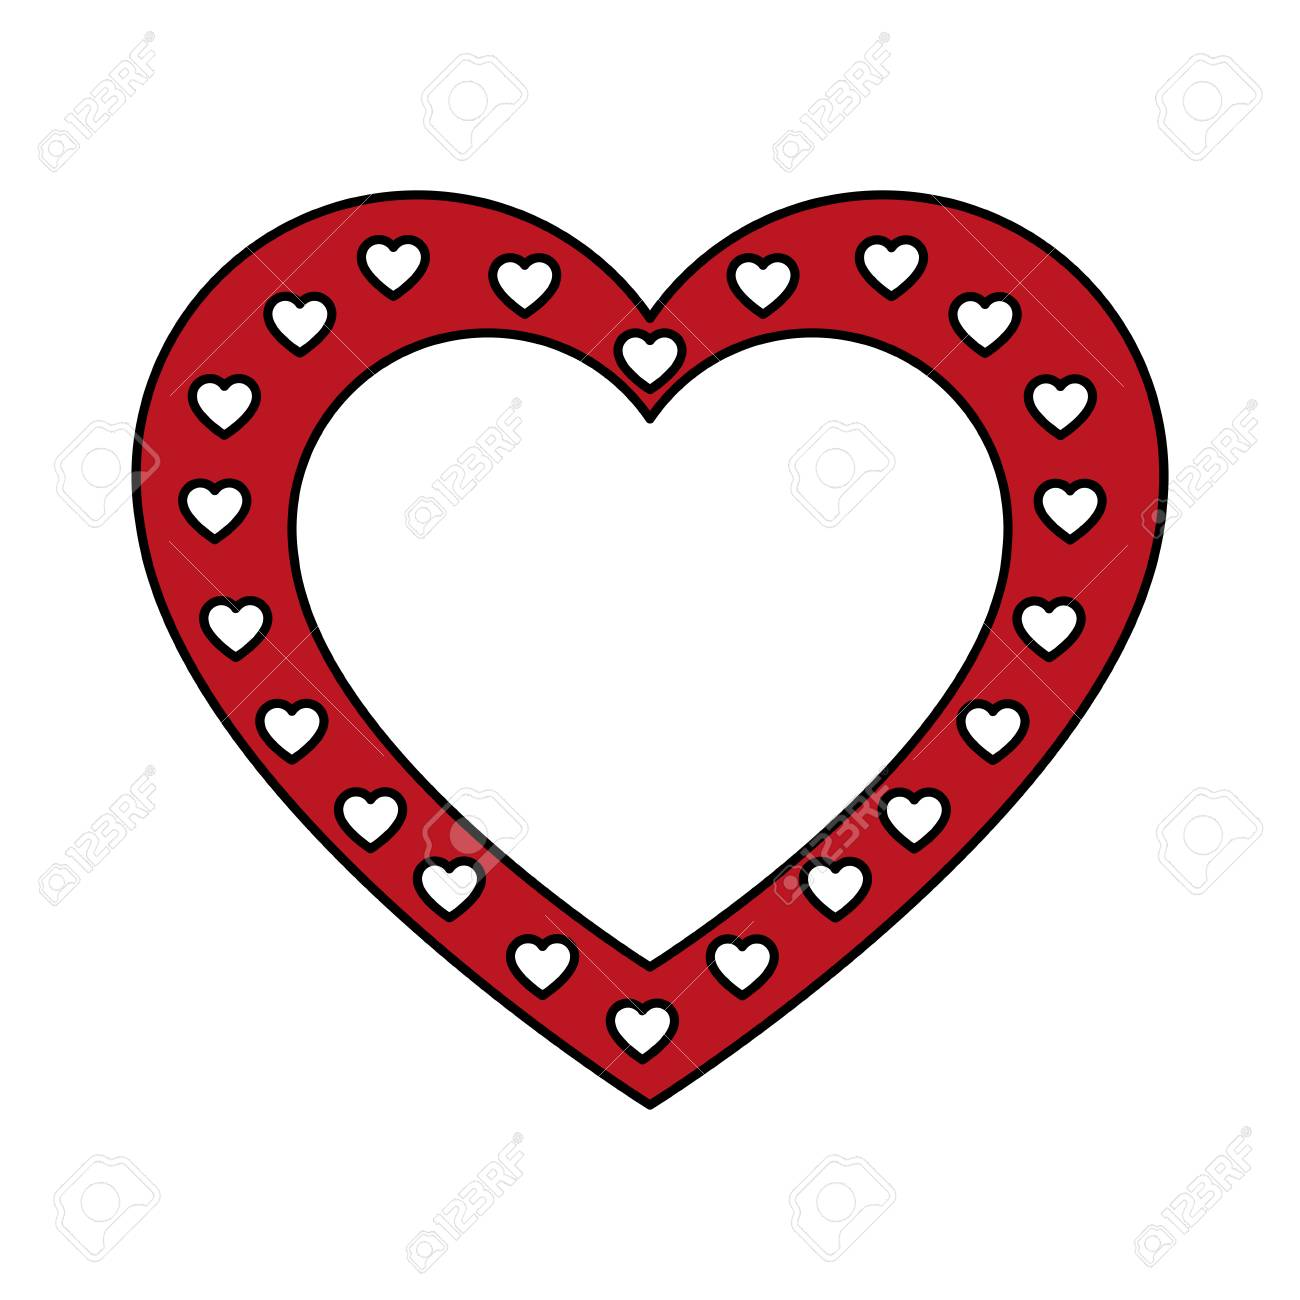 Red Heart Shaped Frame With Small White Hearts Royalty Free Cliparts ...